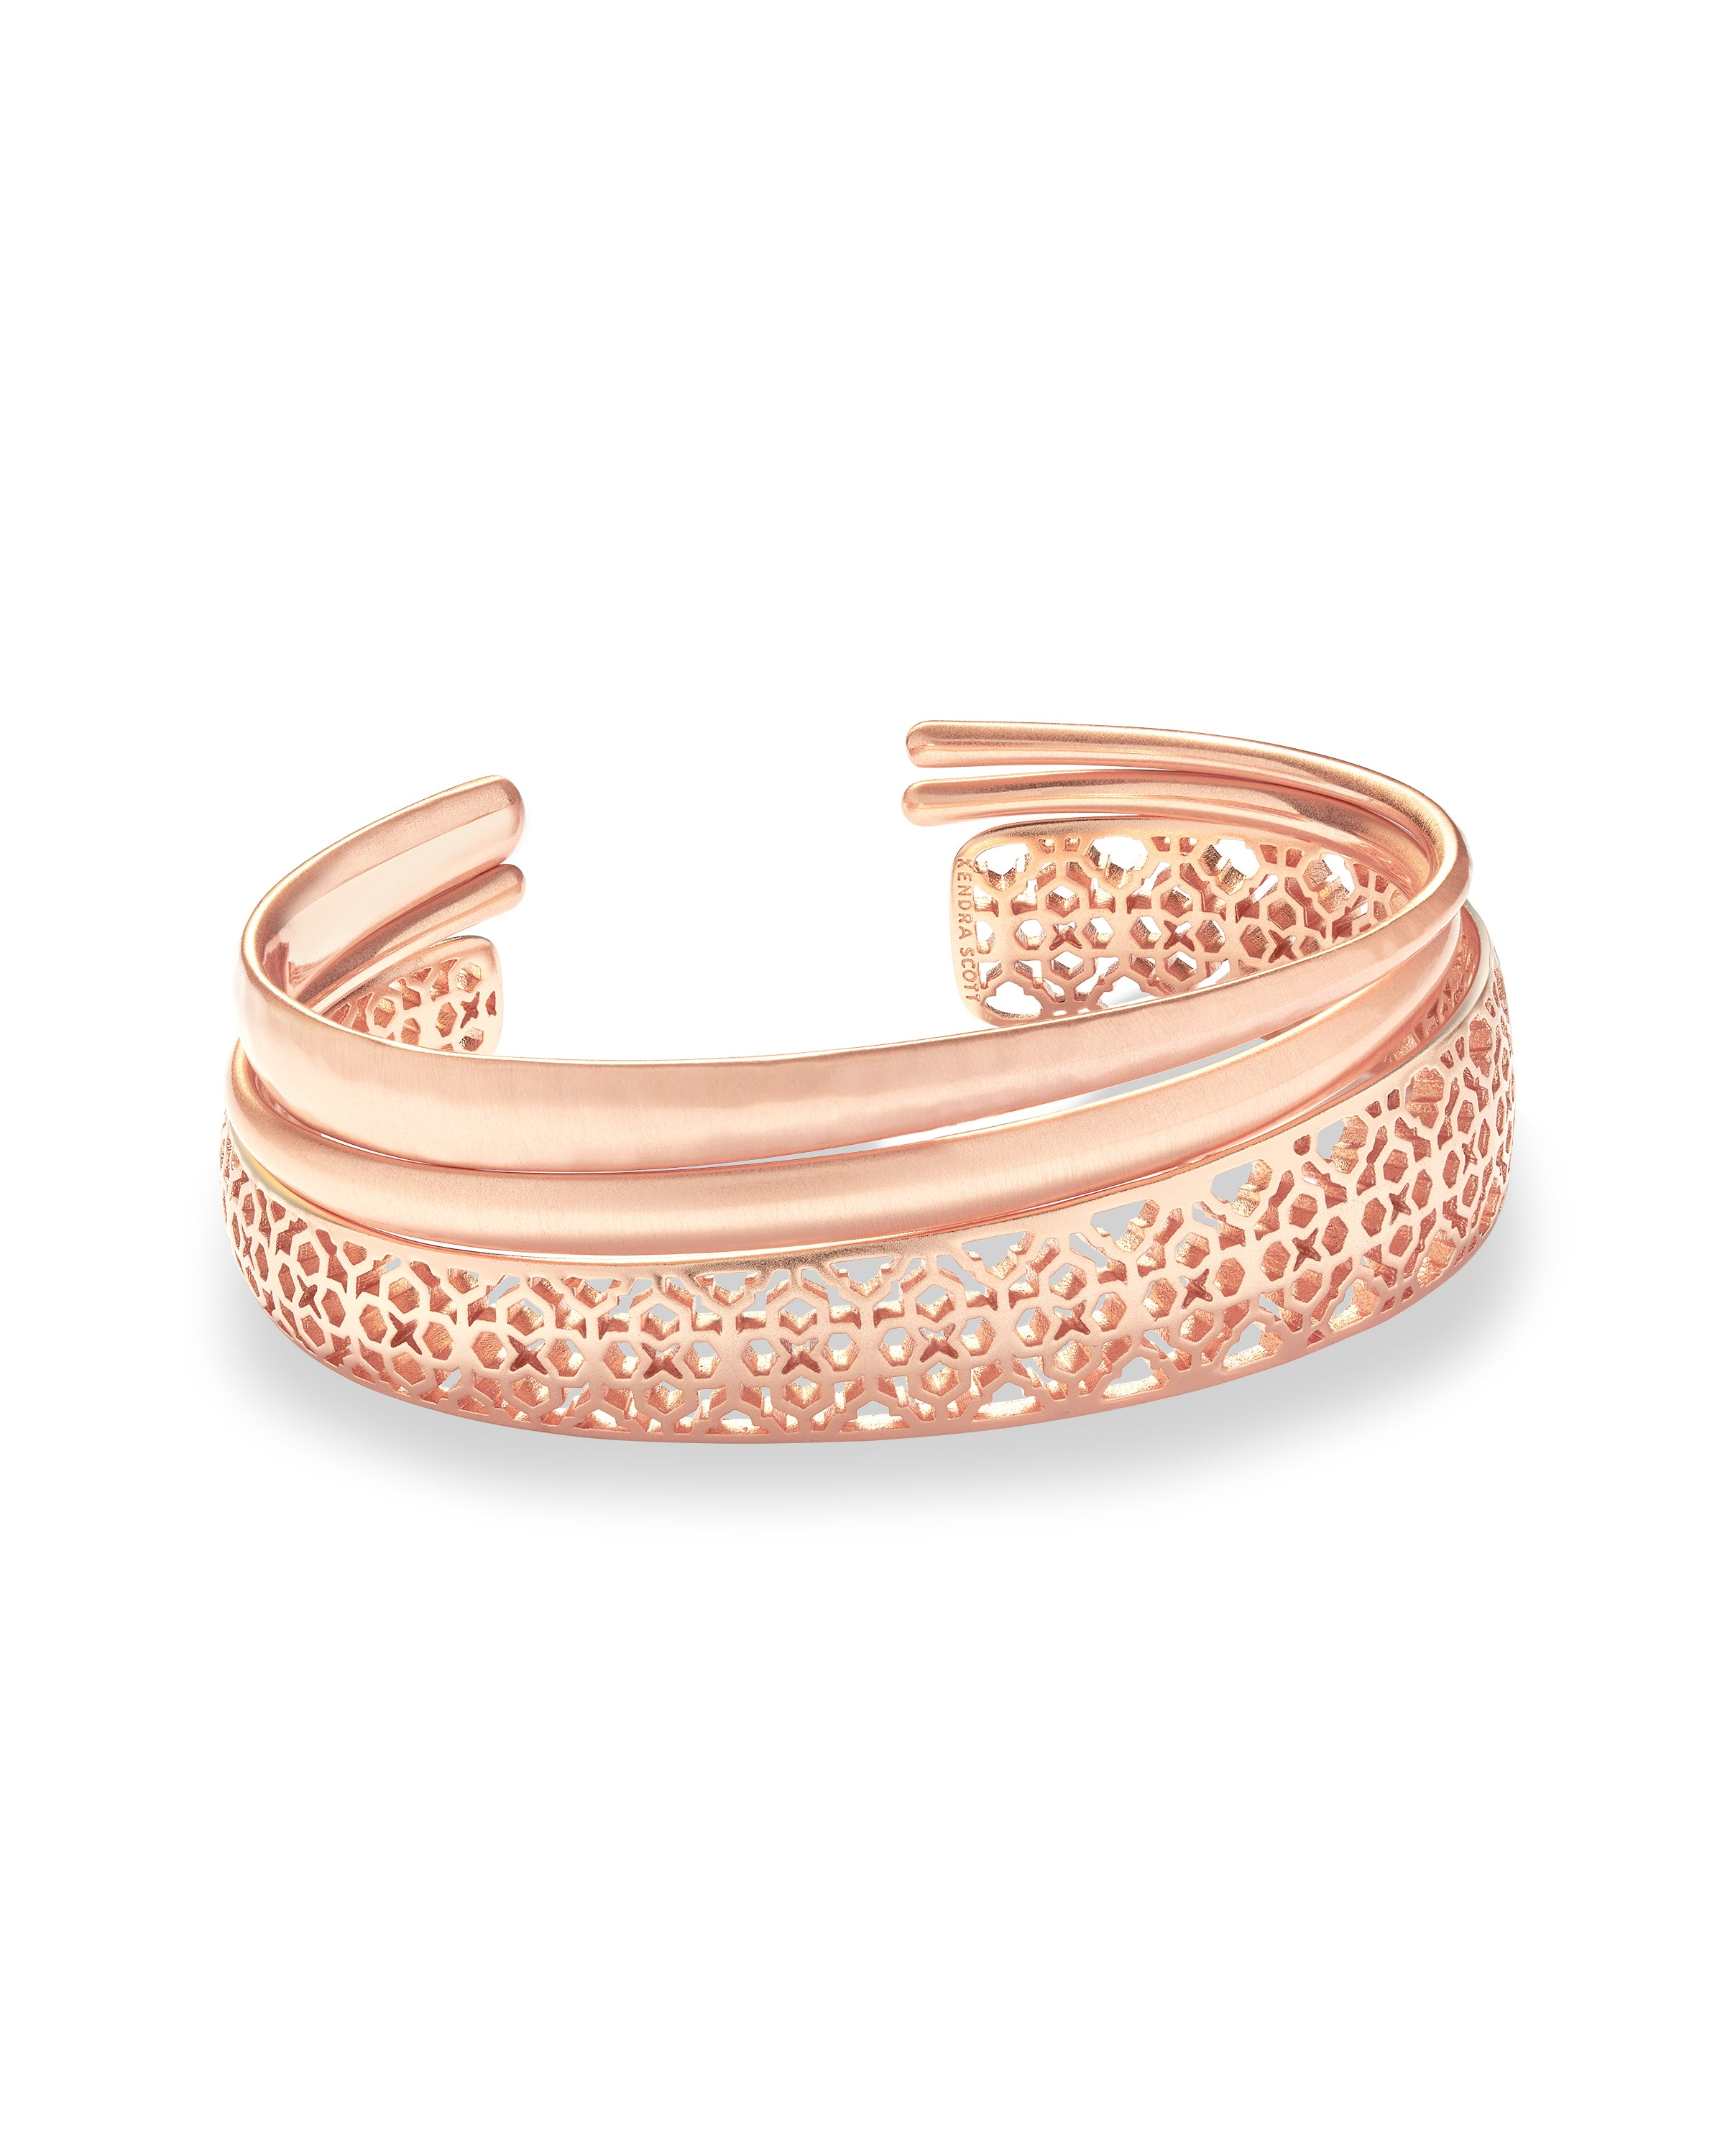 Kendra Scott Tiana Pinch Bracelet Set In Rose Gold Filigree